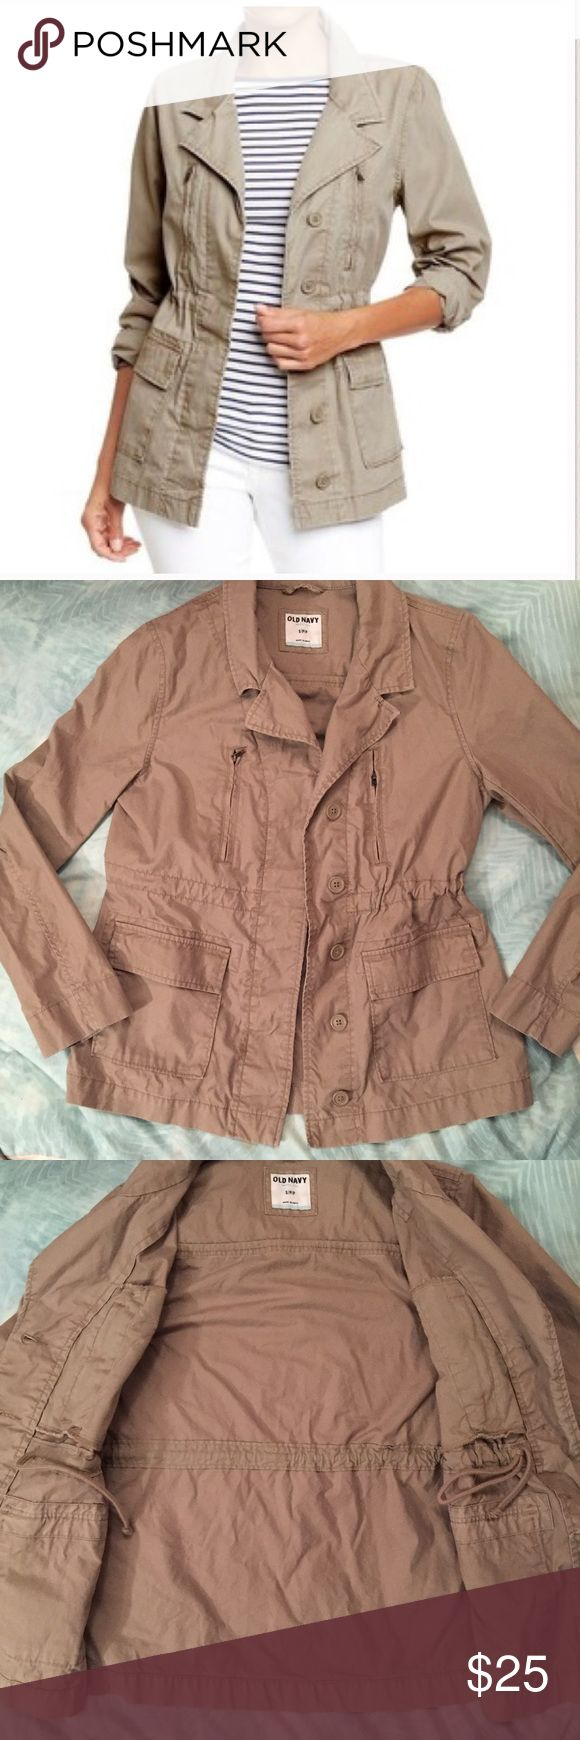 Old Navy Khaki Utility Jacket! Perfect condition khaki utility jacket from Old Navy! Classic utility jacket style with ties on inside! Size small! Old Navy Jackets & Coats Utility Jackets